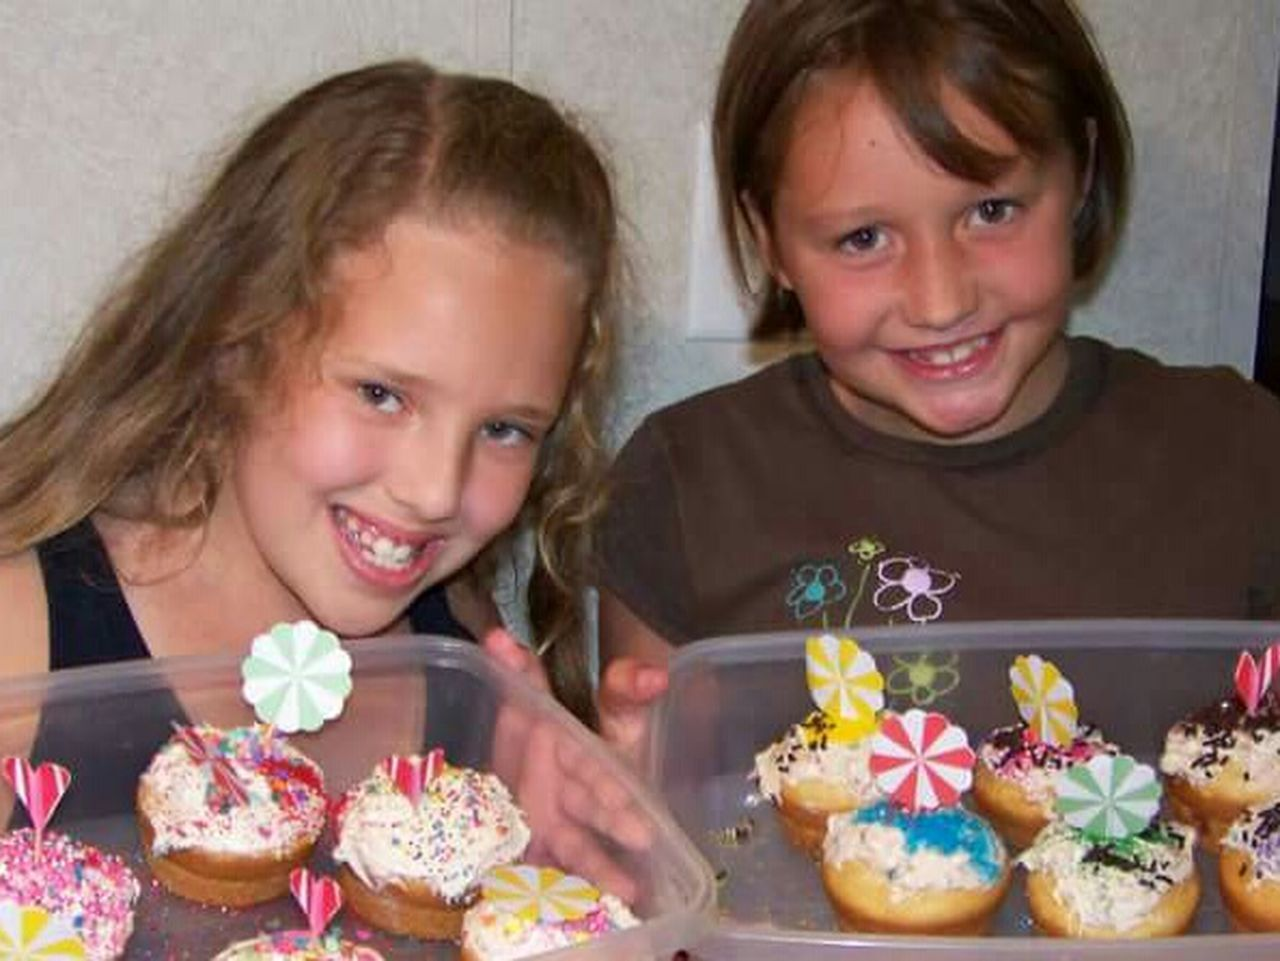 Kids Photography Kids Cooking Kids Baking Homemade Hanging Out